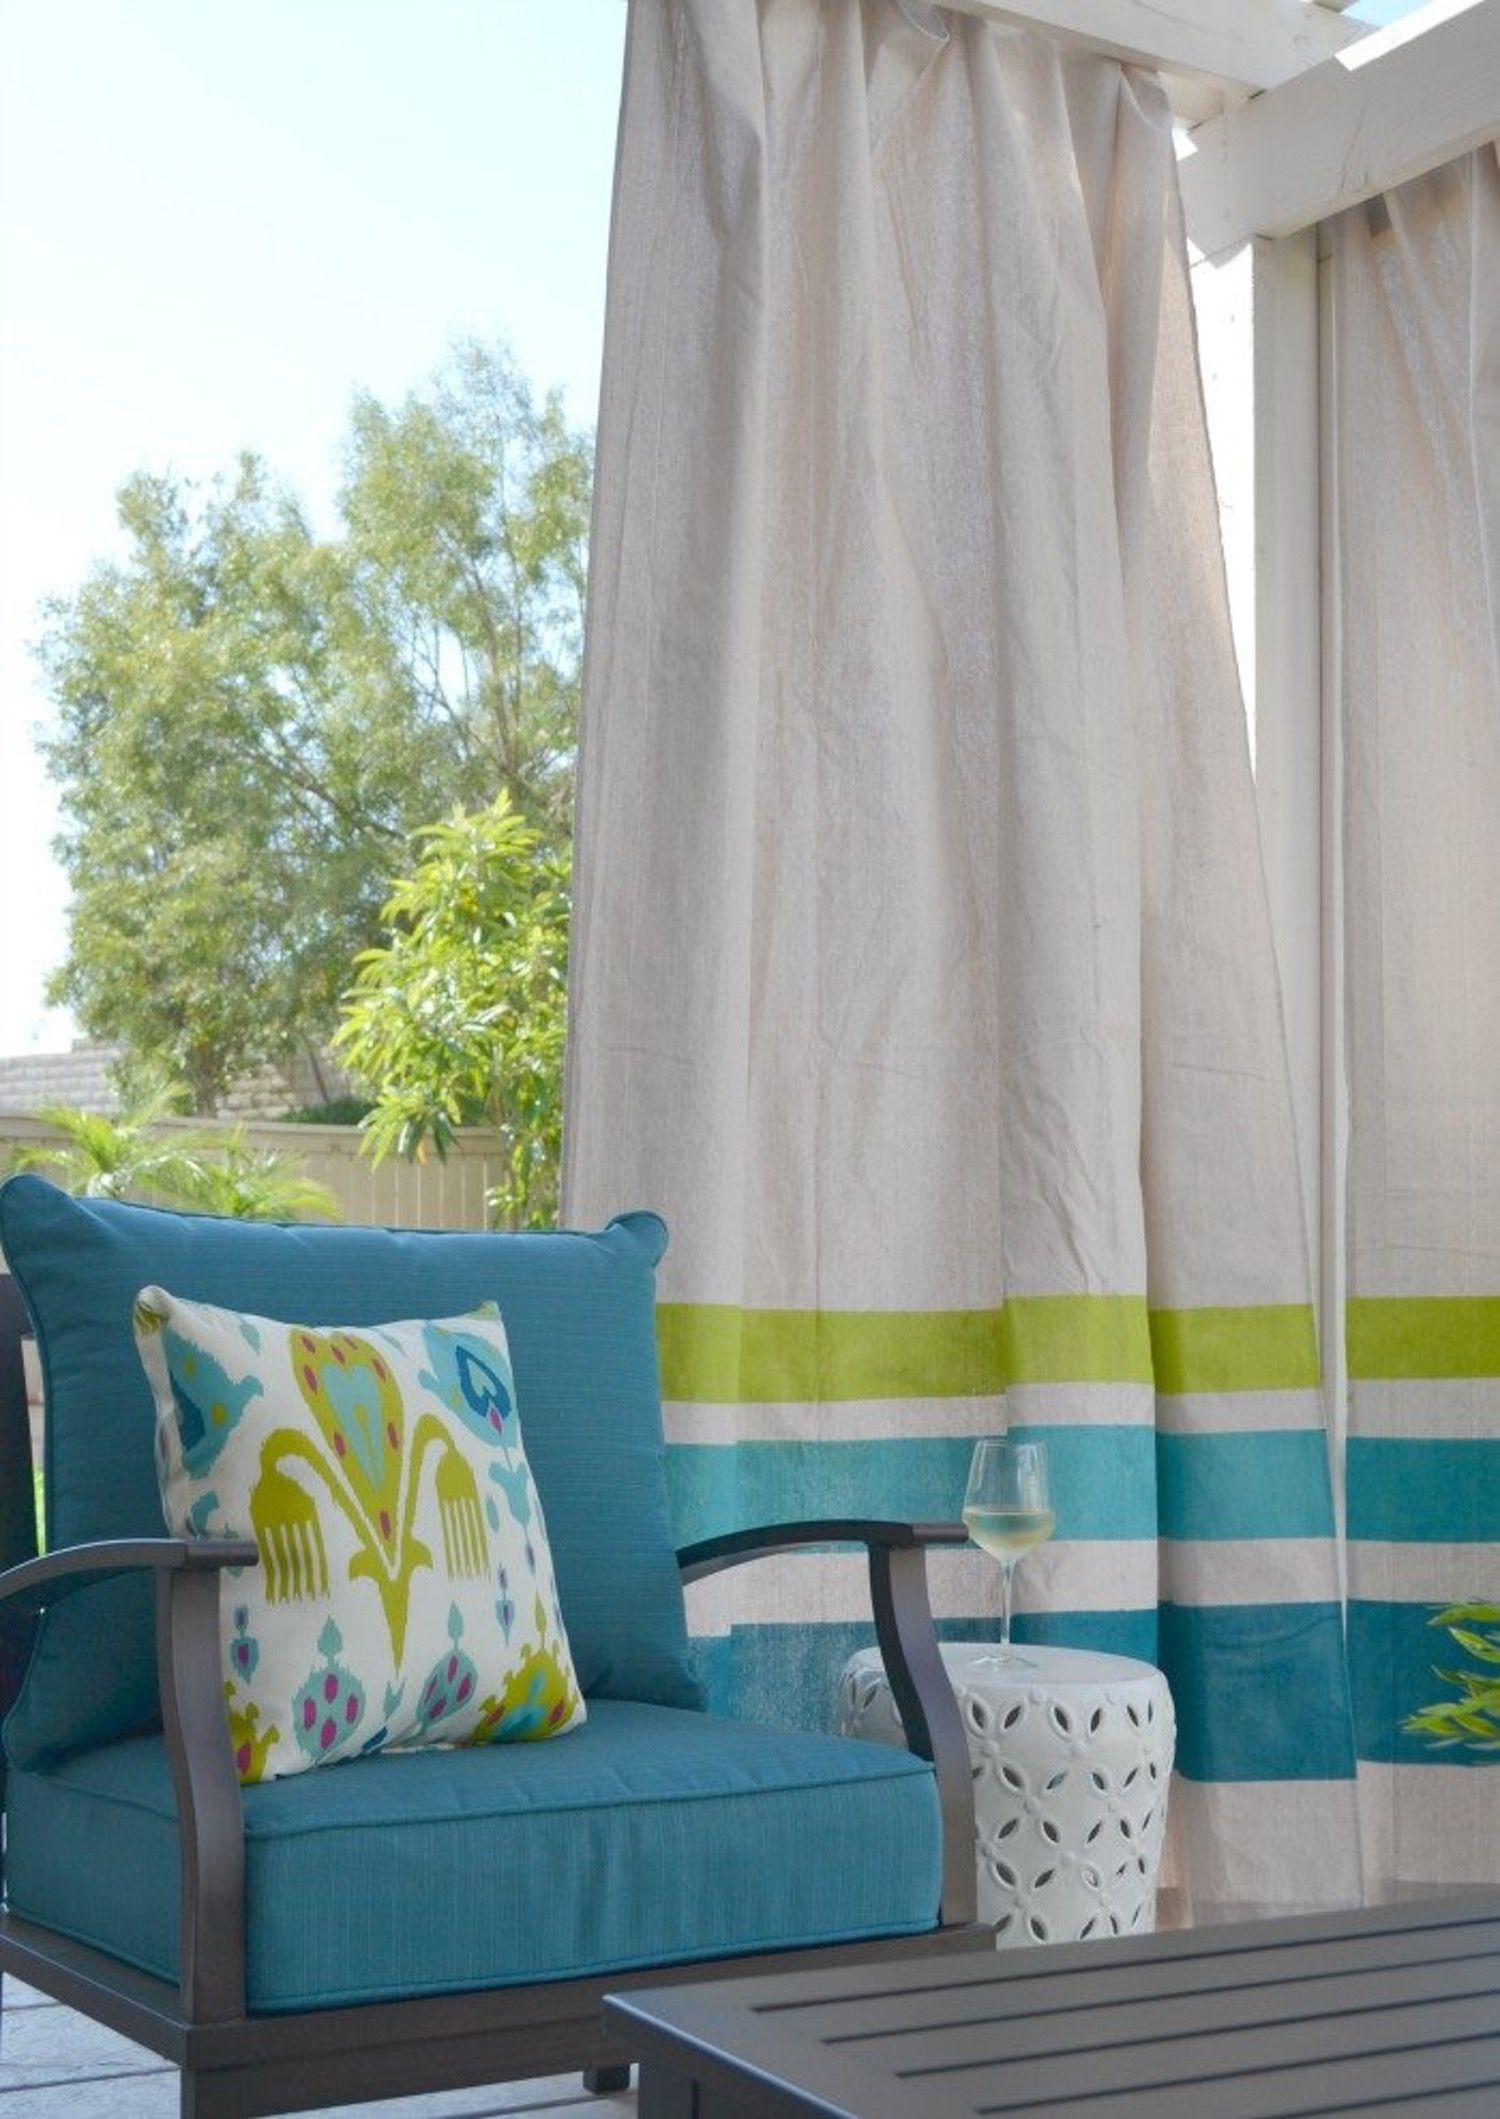 DIY These Easy Drop Cloth Outdoor Curtains For Under 50 Apartment Therapy Reader Project Tutorials